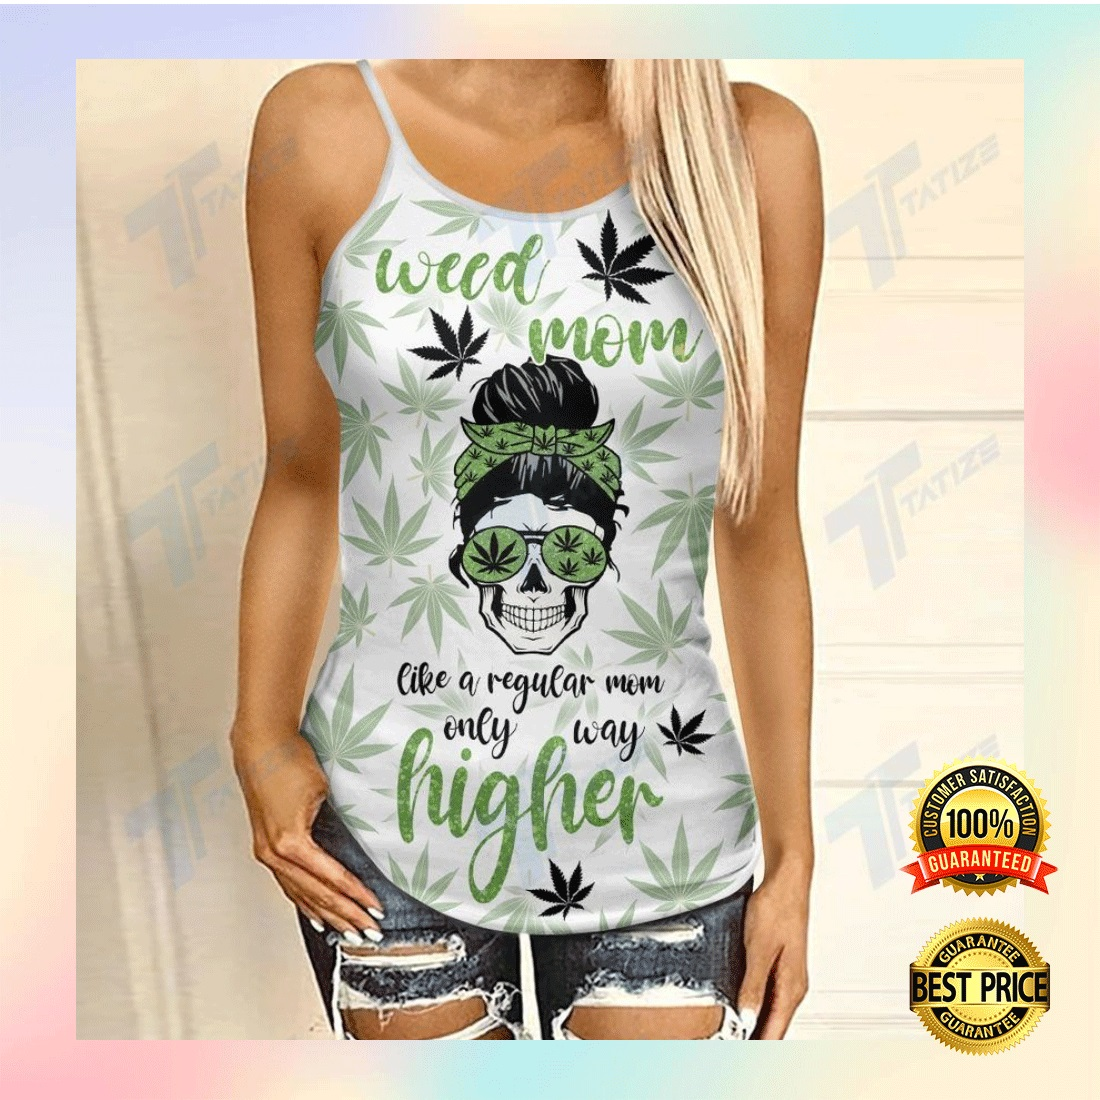 WEED MOM LIKE A REGULAR MOM ONLY WAY HIGHER CRISS-CROSS TANK TOP 6